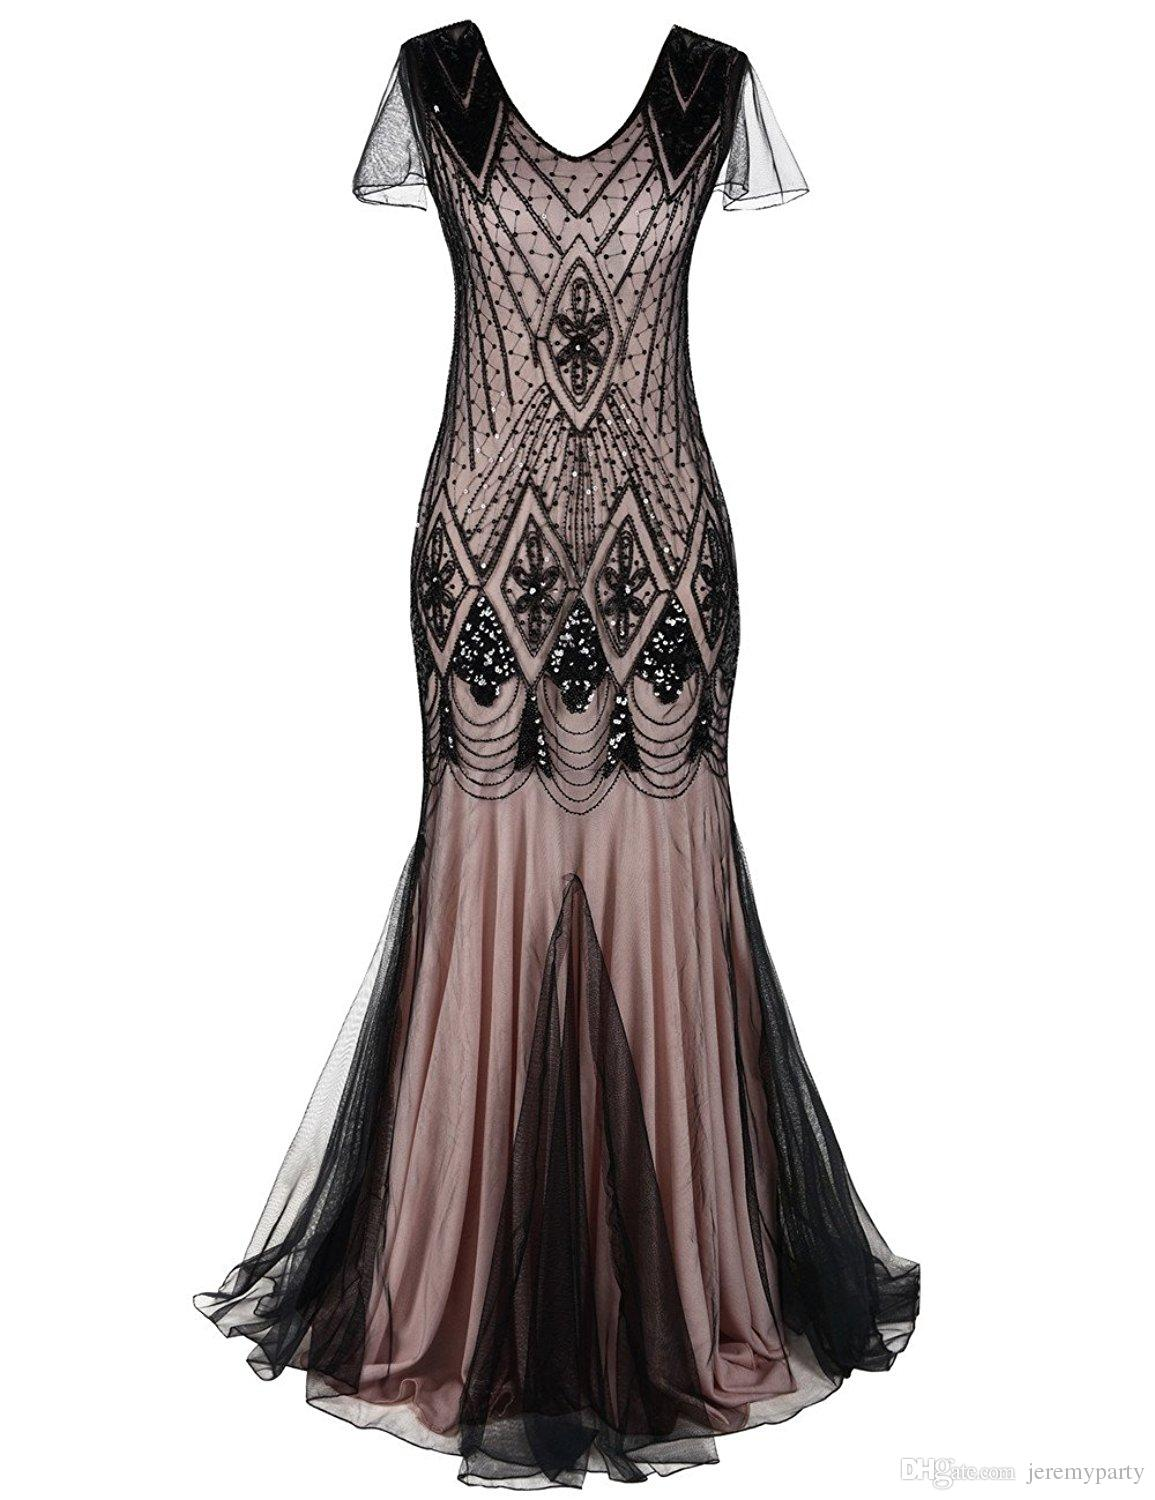 2019 QUALITY Plus Size Women 1920s Vintage Long Prom Gown Beaded Sequin  Mermaid Gatsby Party Evening Dress With Sleeve From Jeremyparty, $30.15 |  ...